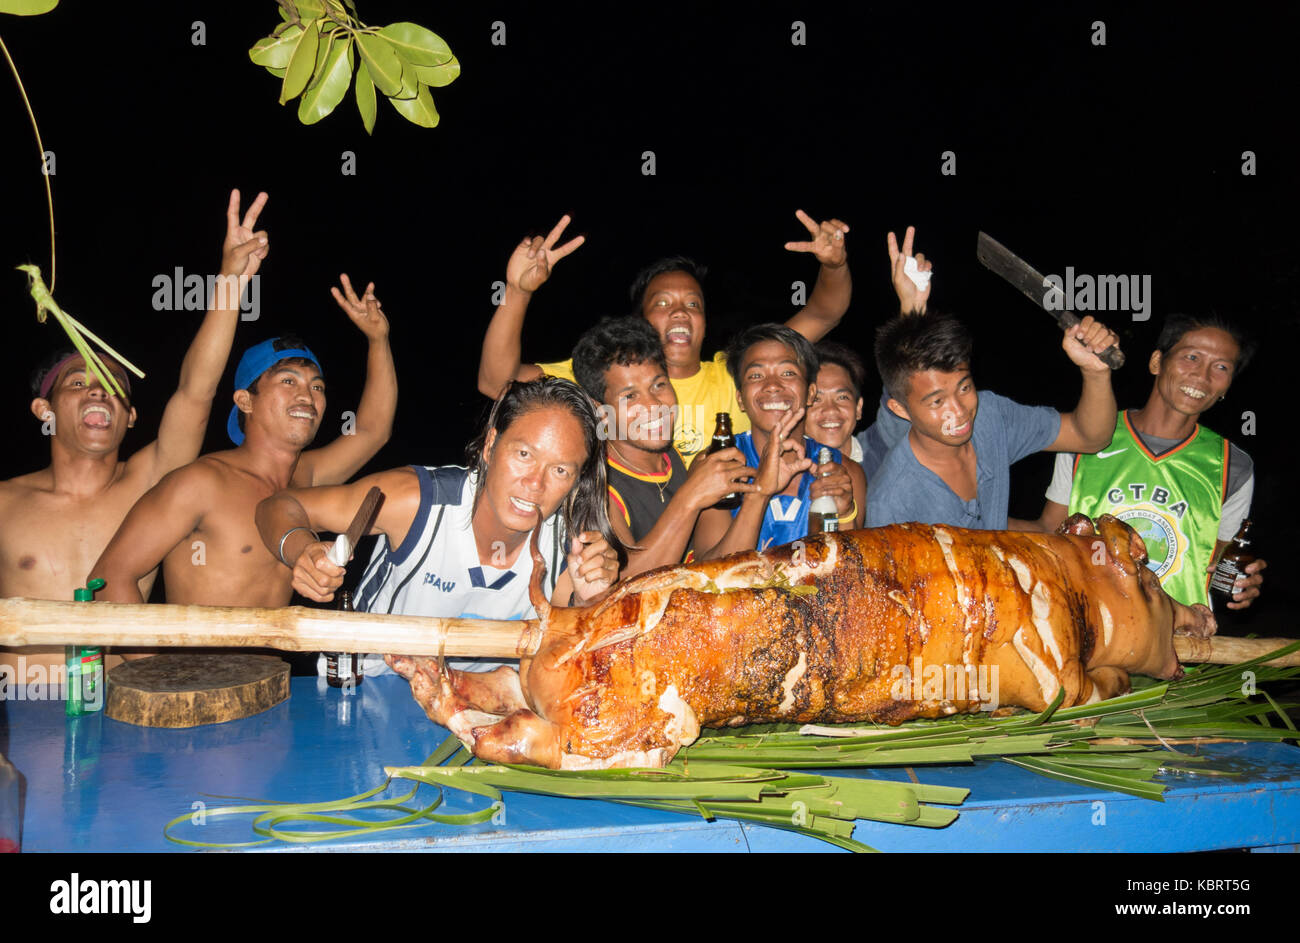 philippines-holiday-staff-and-prepared-hog-roast-tao-farm-el-nido-KBRT5G.jpg